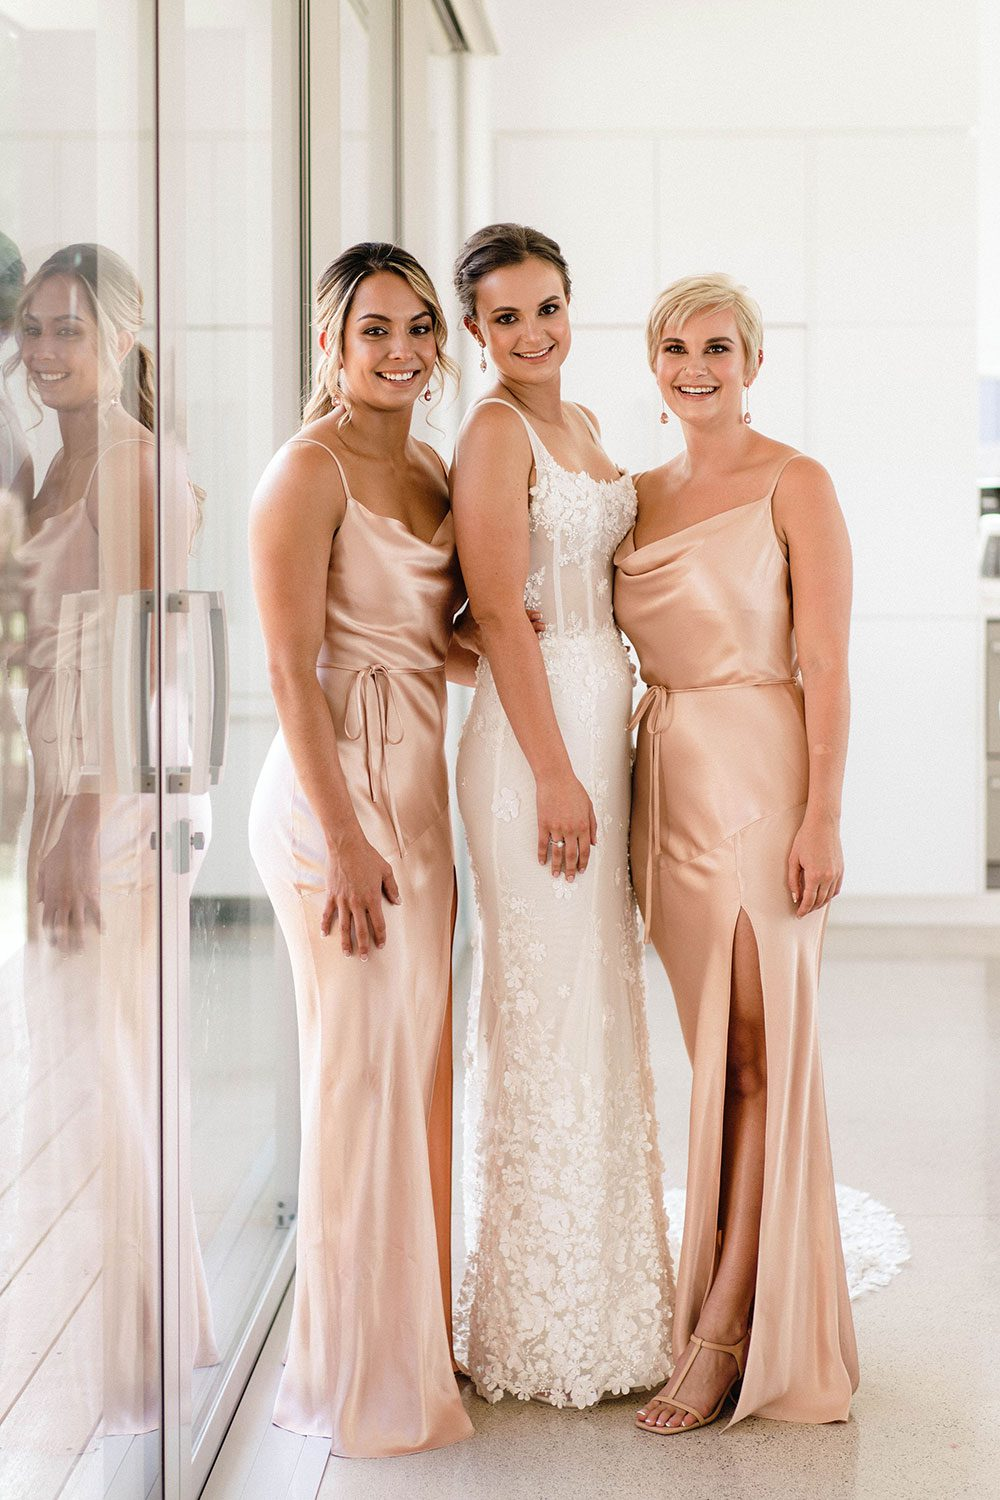 Bride wears bespoke E'More lace gown with boned bodice with hand beaded flower applique and full lace train - with bridesmaids near window